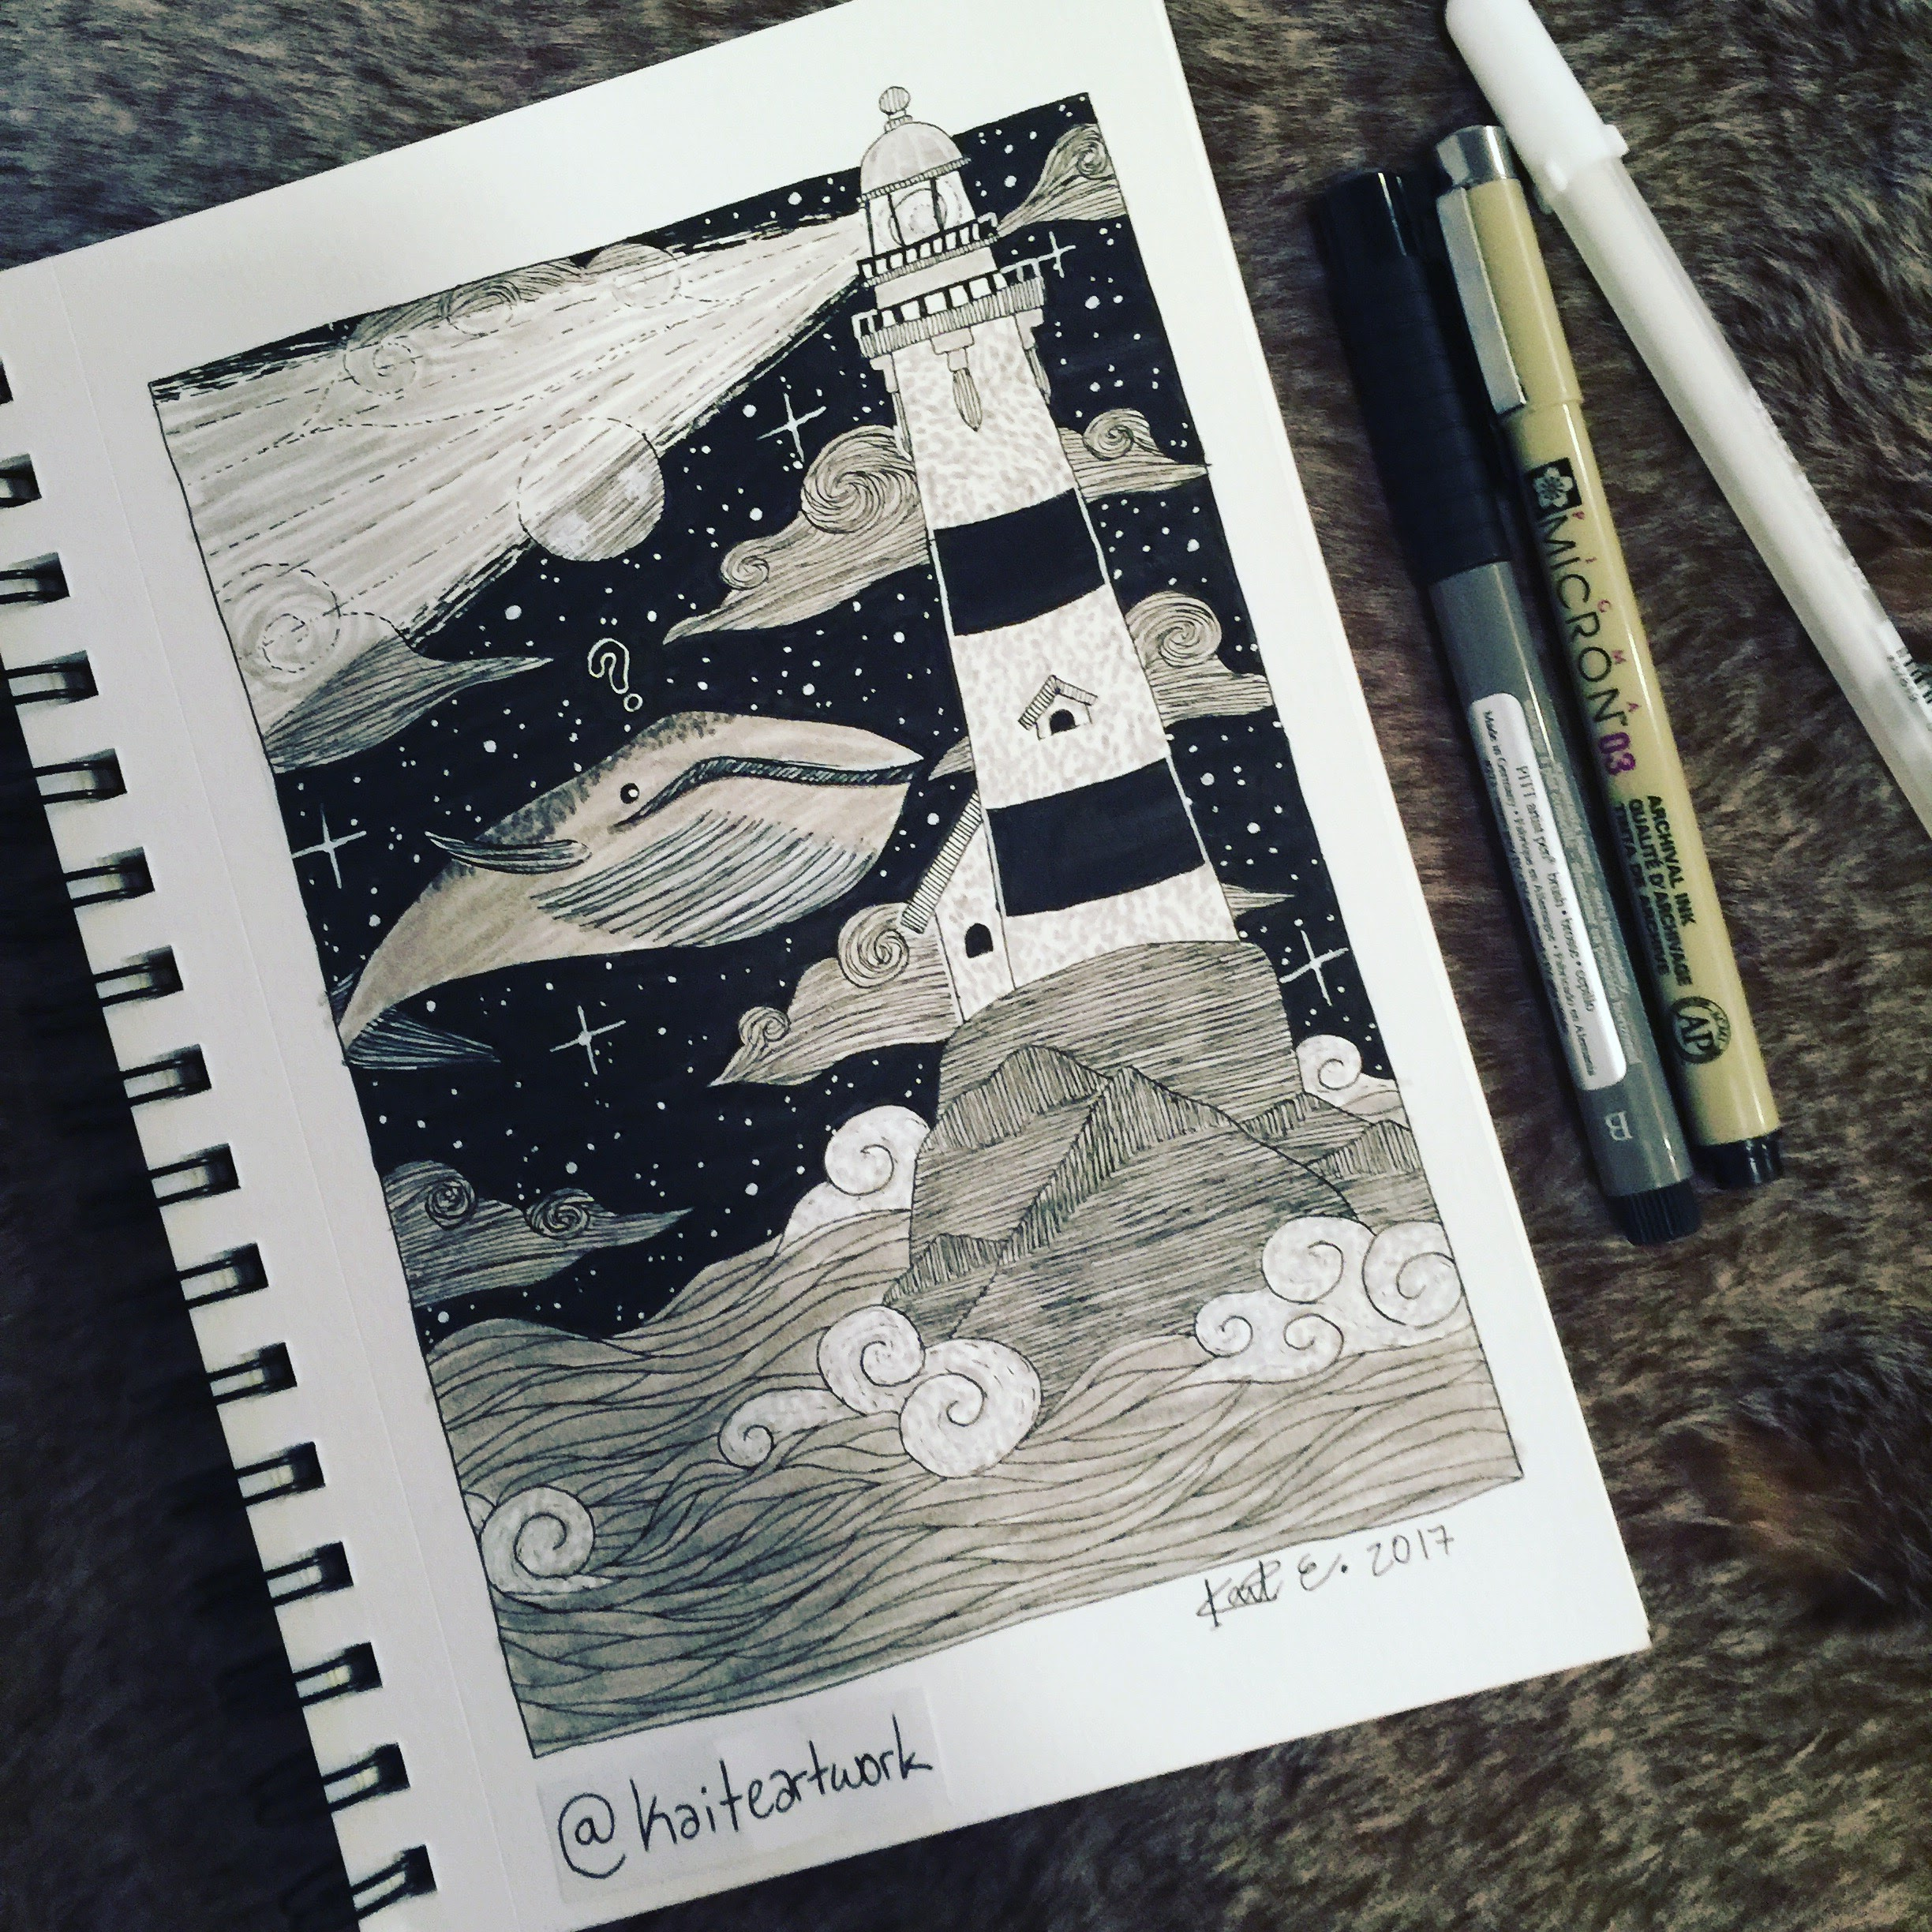 Day 8: The Whale